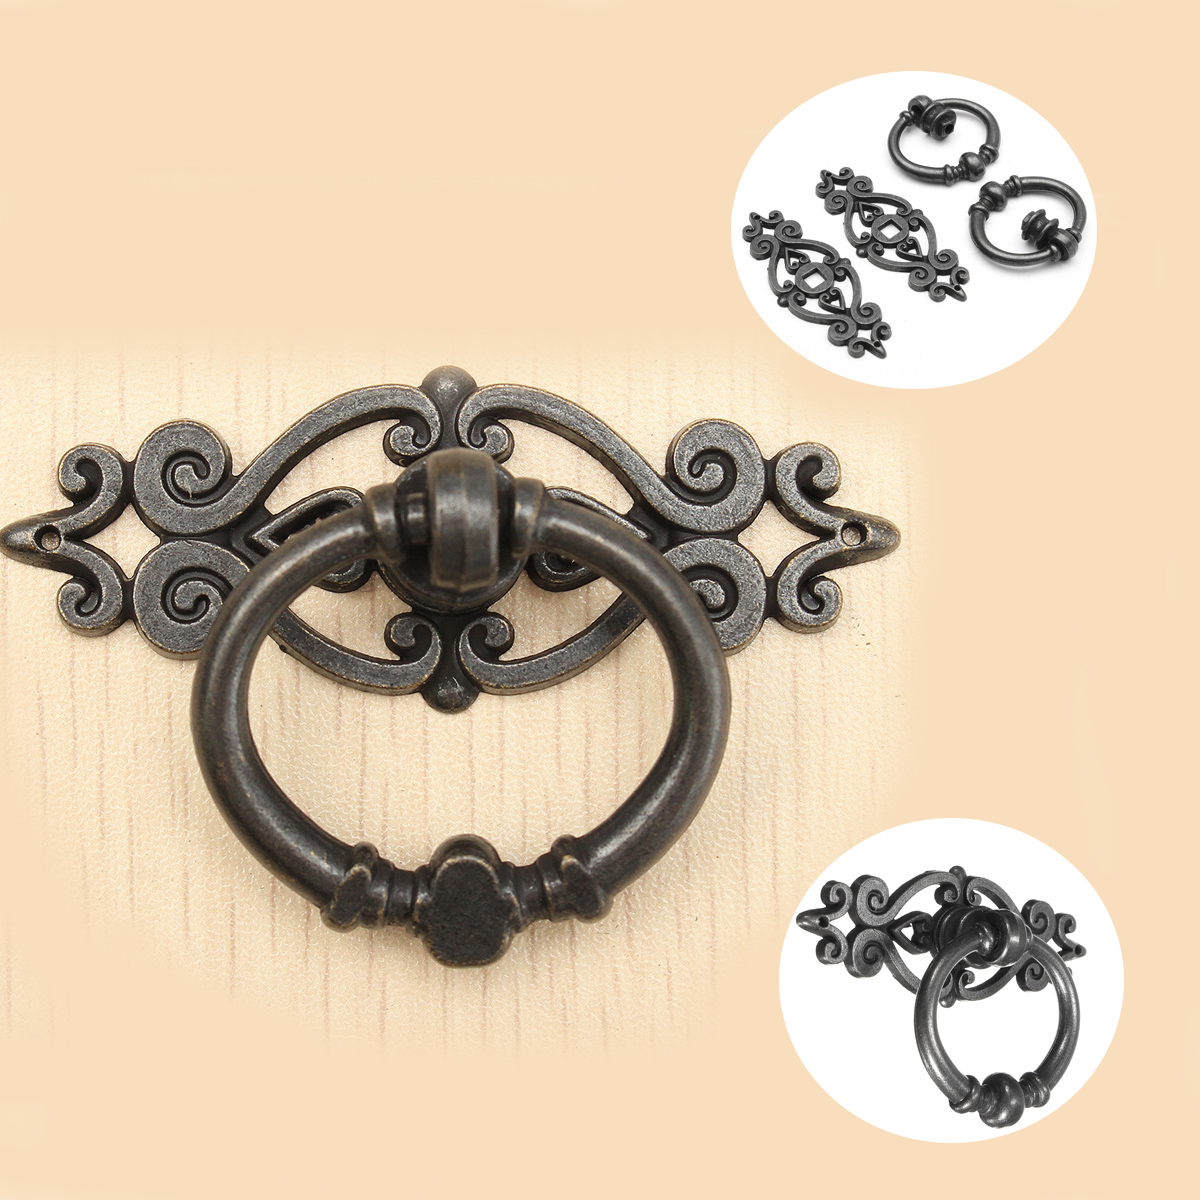 uxcell Family Jewelry Box Cabinet Door Pull Handle Ring Bronze Tone 10pcs